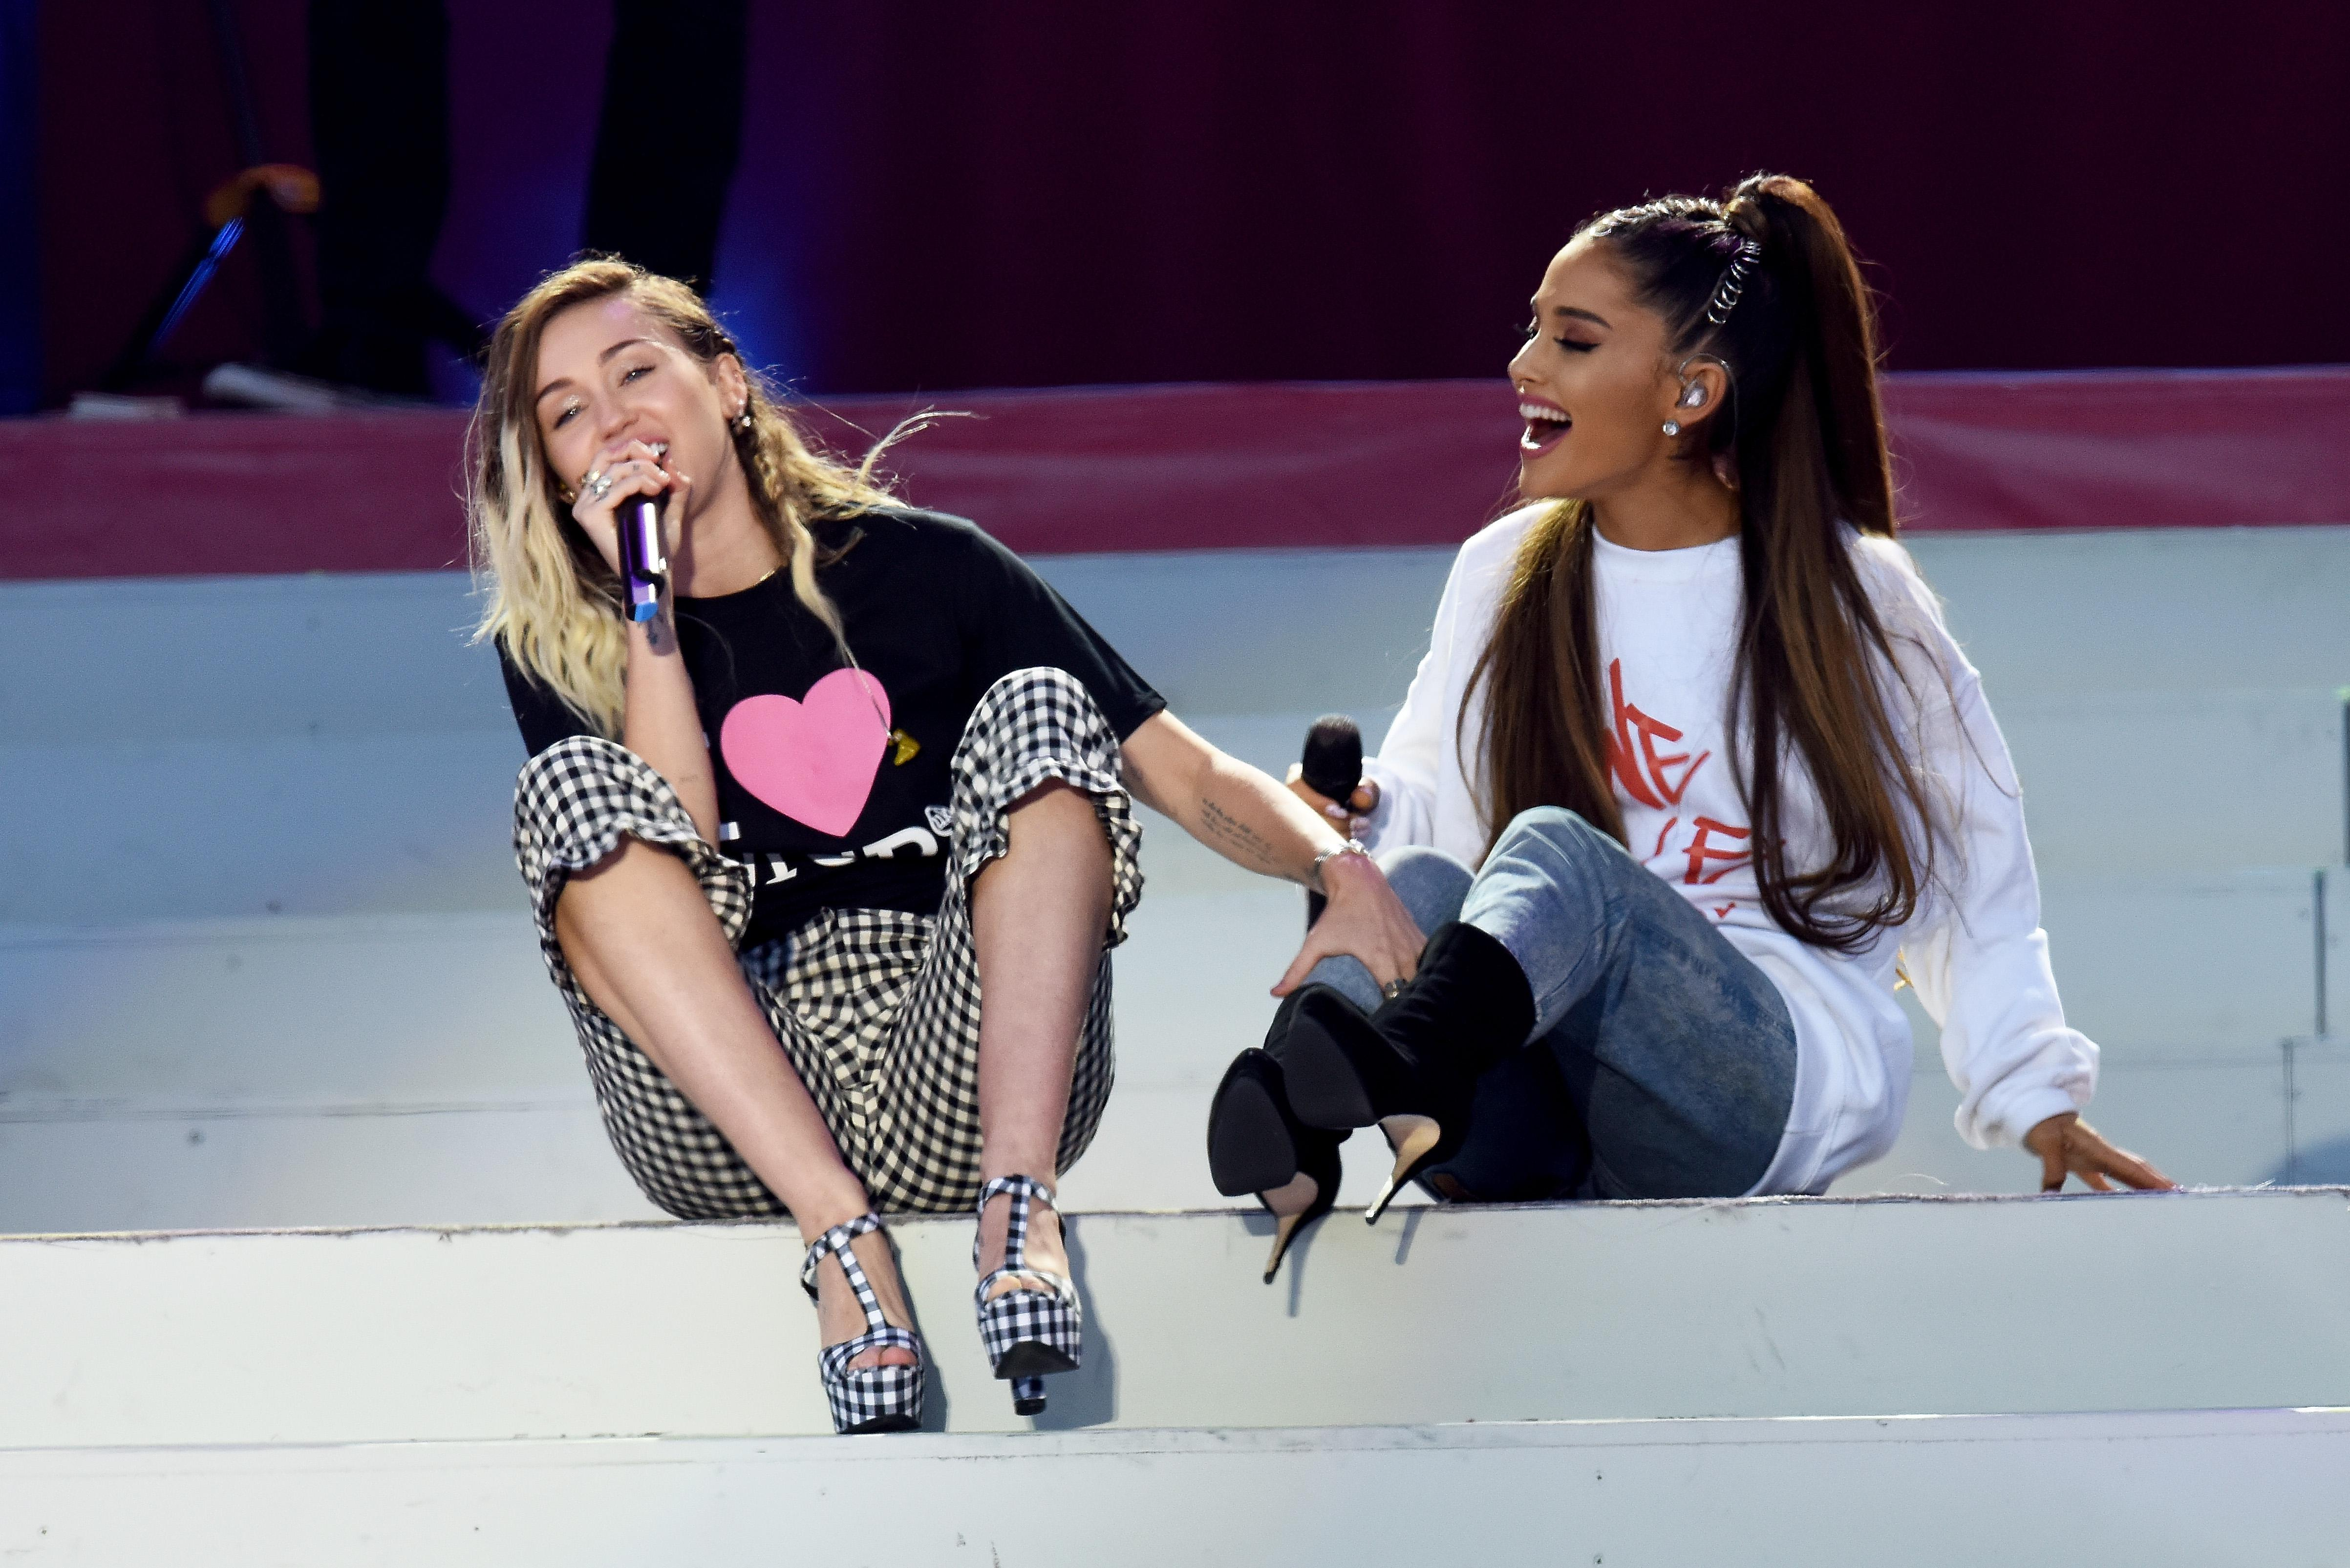 Miley Cyrus and Ariana Grande smile and sit on the white stairs while performing onstage together